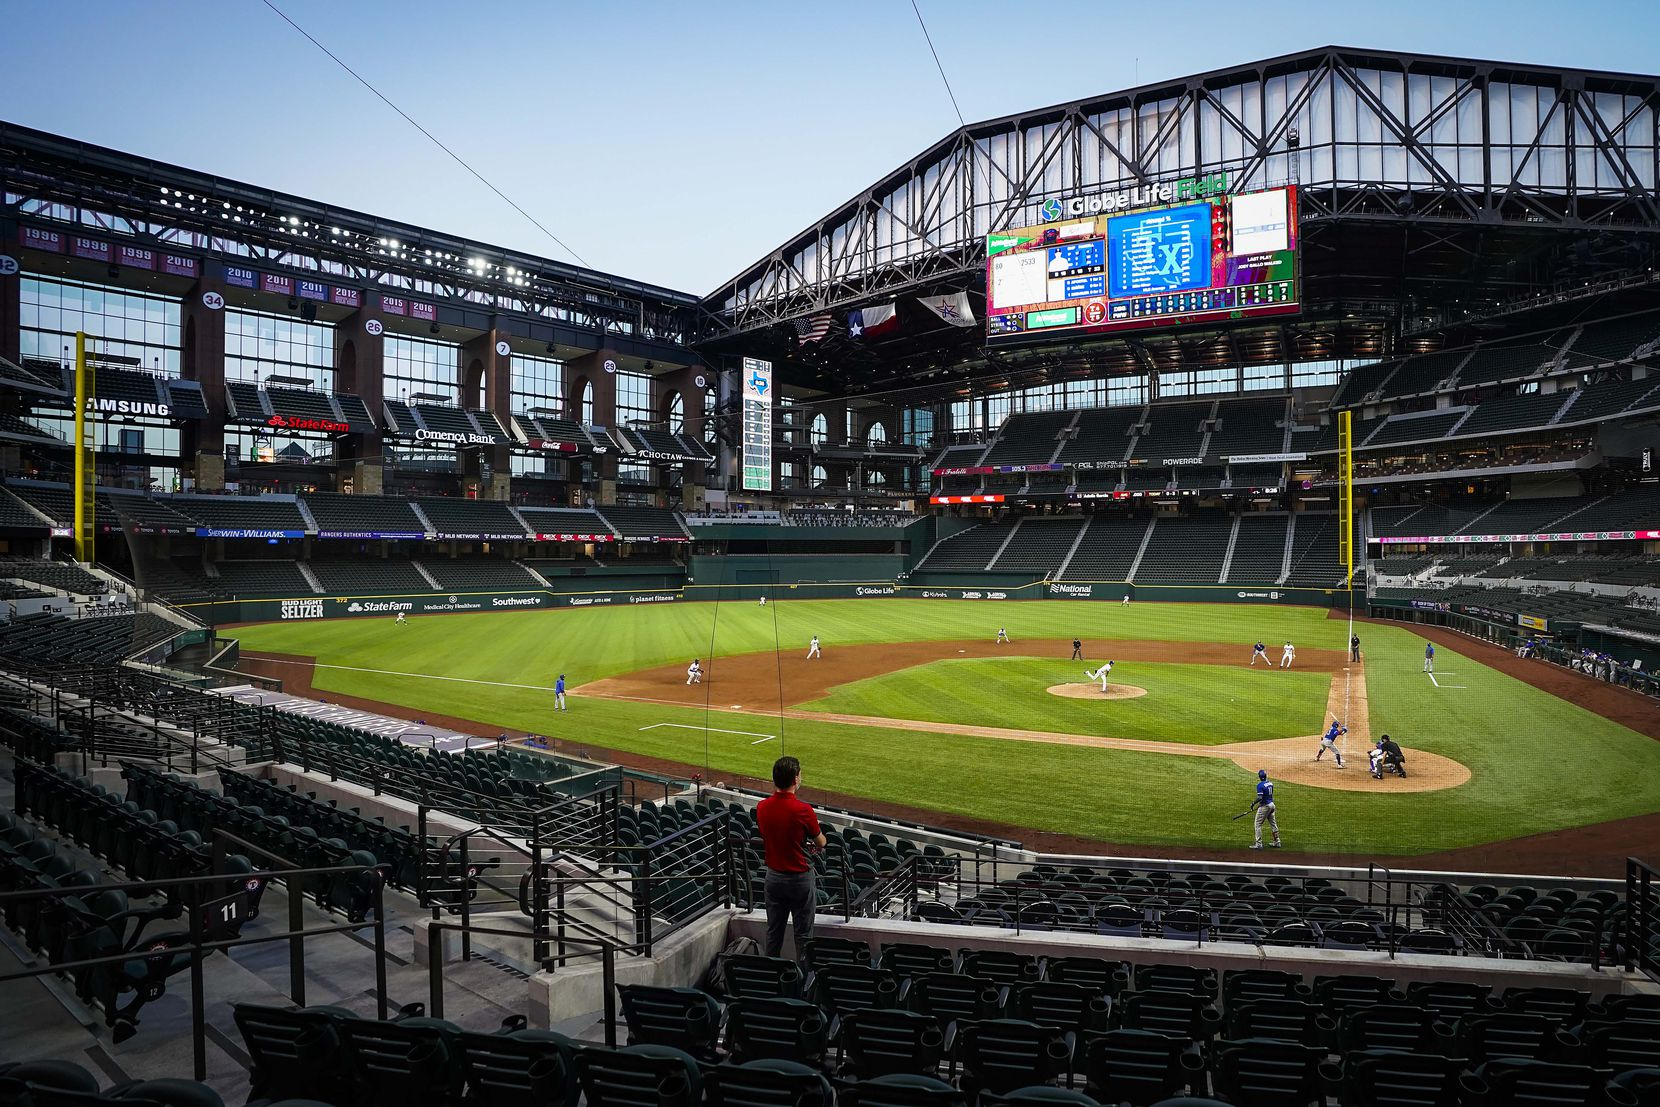 The retractable roof is open during a Texas Rangers Summer Camp intrasquad game during at Globe Life Field on Friday, July 17, 2020.